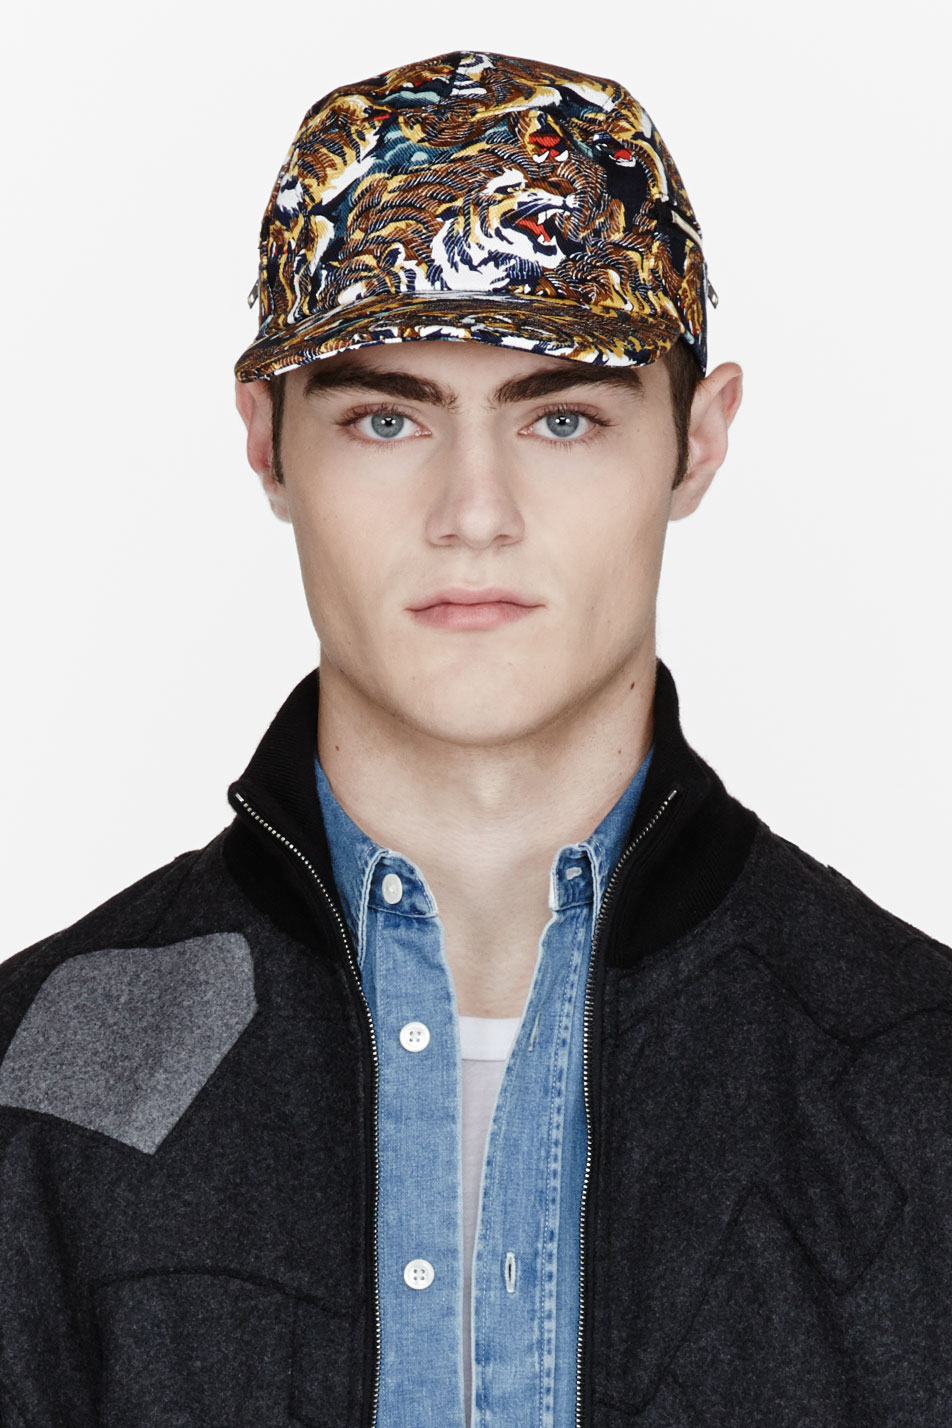 Lyst - KENZO Tan and Navy Flying Tiger Print Cap for Men 0d808da47ec